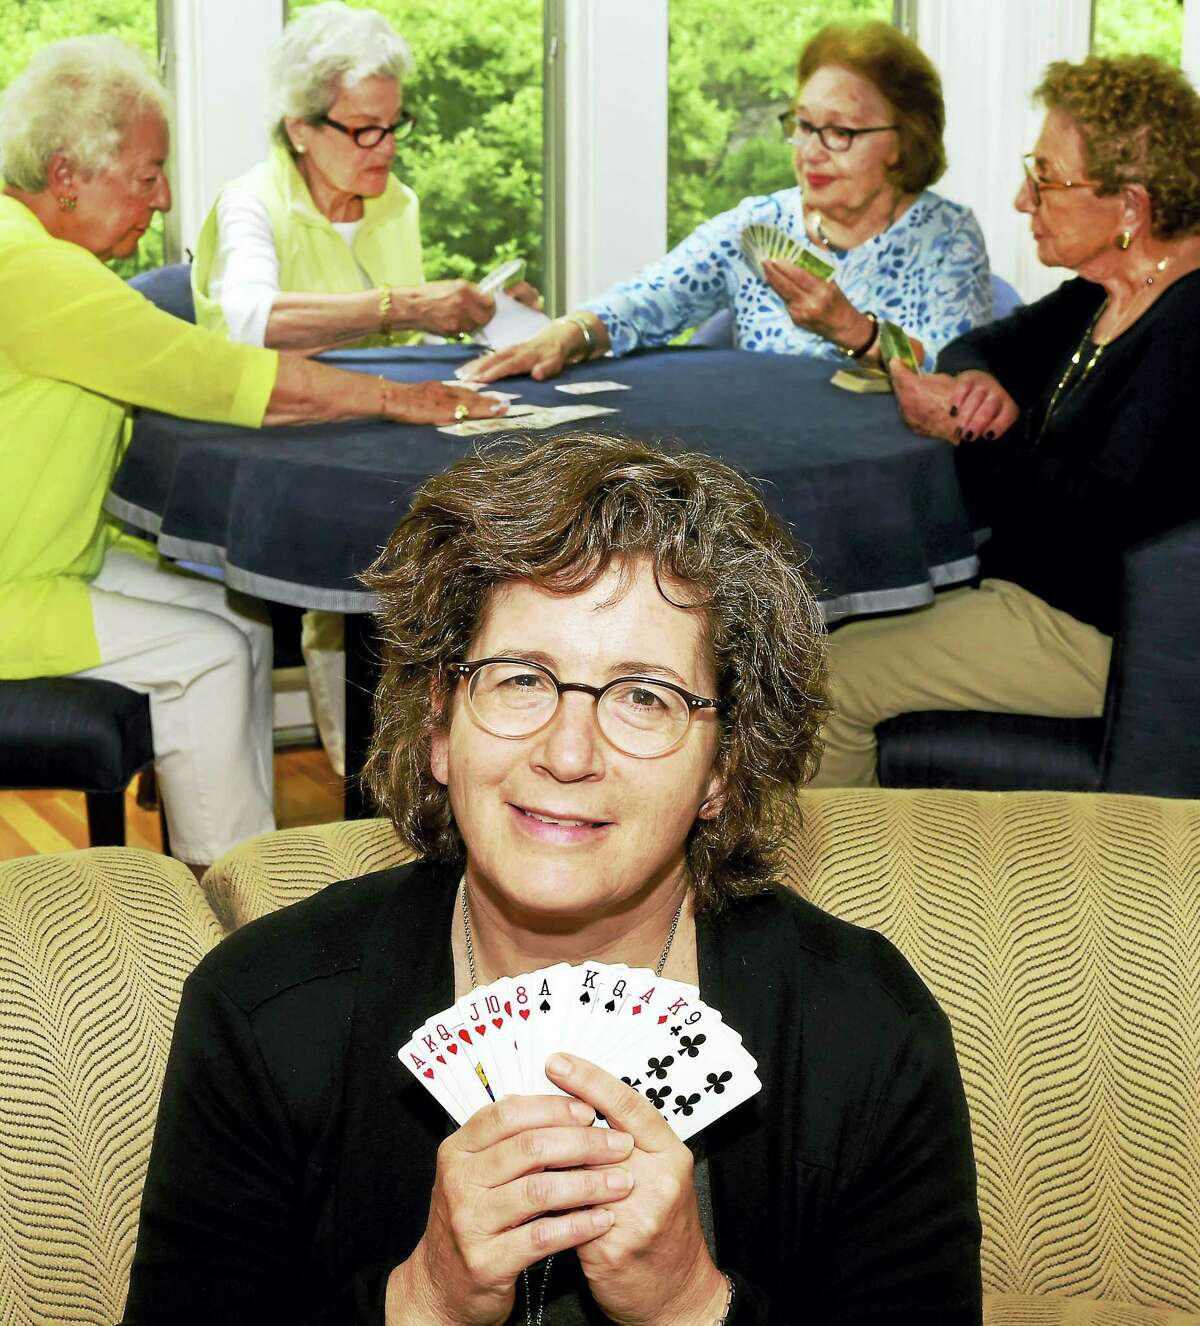 Betsy Lerner, foreground, author the book The Bridge Ladies, who has written a book about a group of ladies who have been playing Bridge together for about 50 years. In background, left to right, are Rhoda Myers of Milford, Bette Horowitz of Woodbridge, Jackie Podoloff of Bethany, and Roslyn Lerner of Woodbridge.